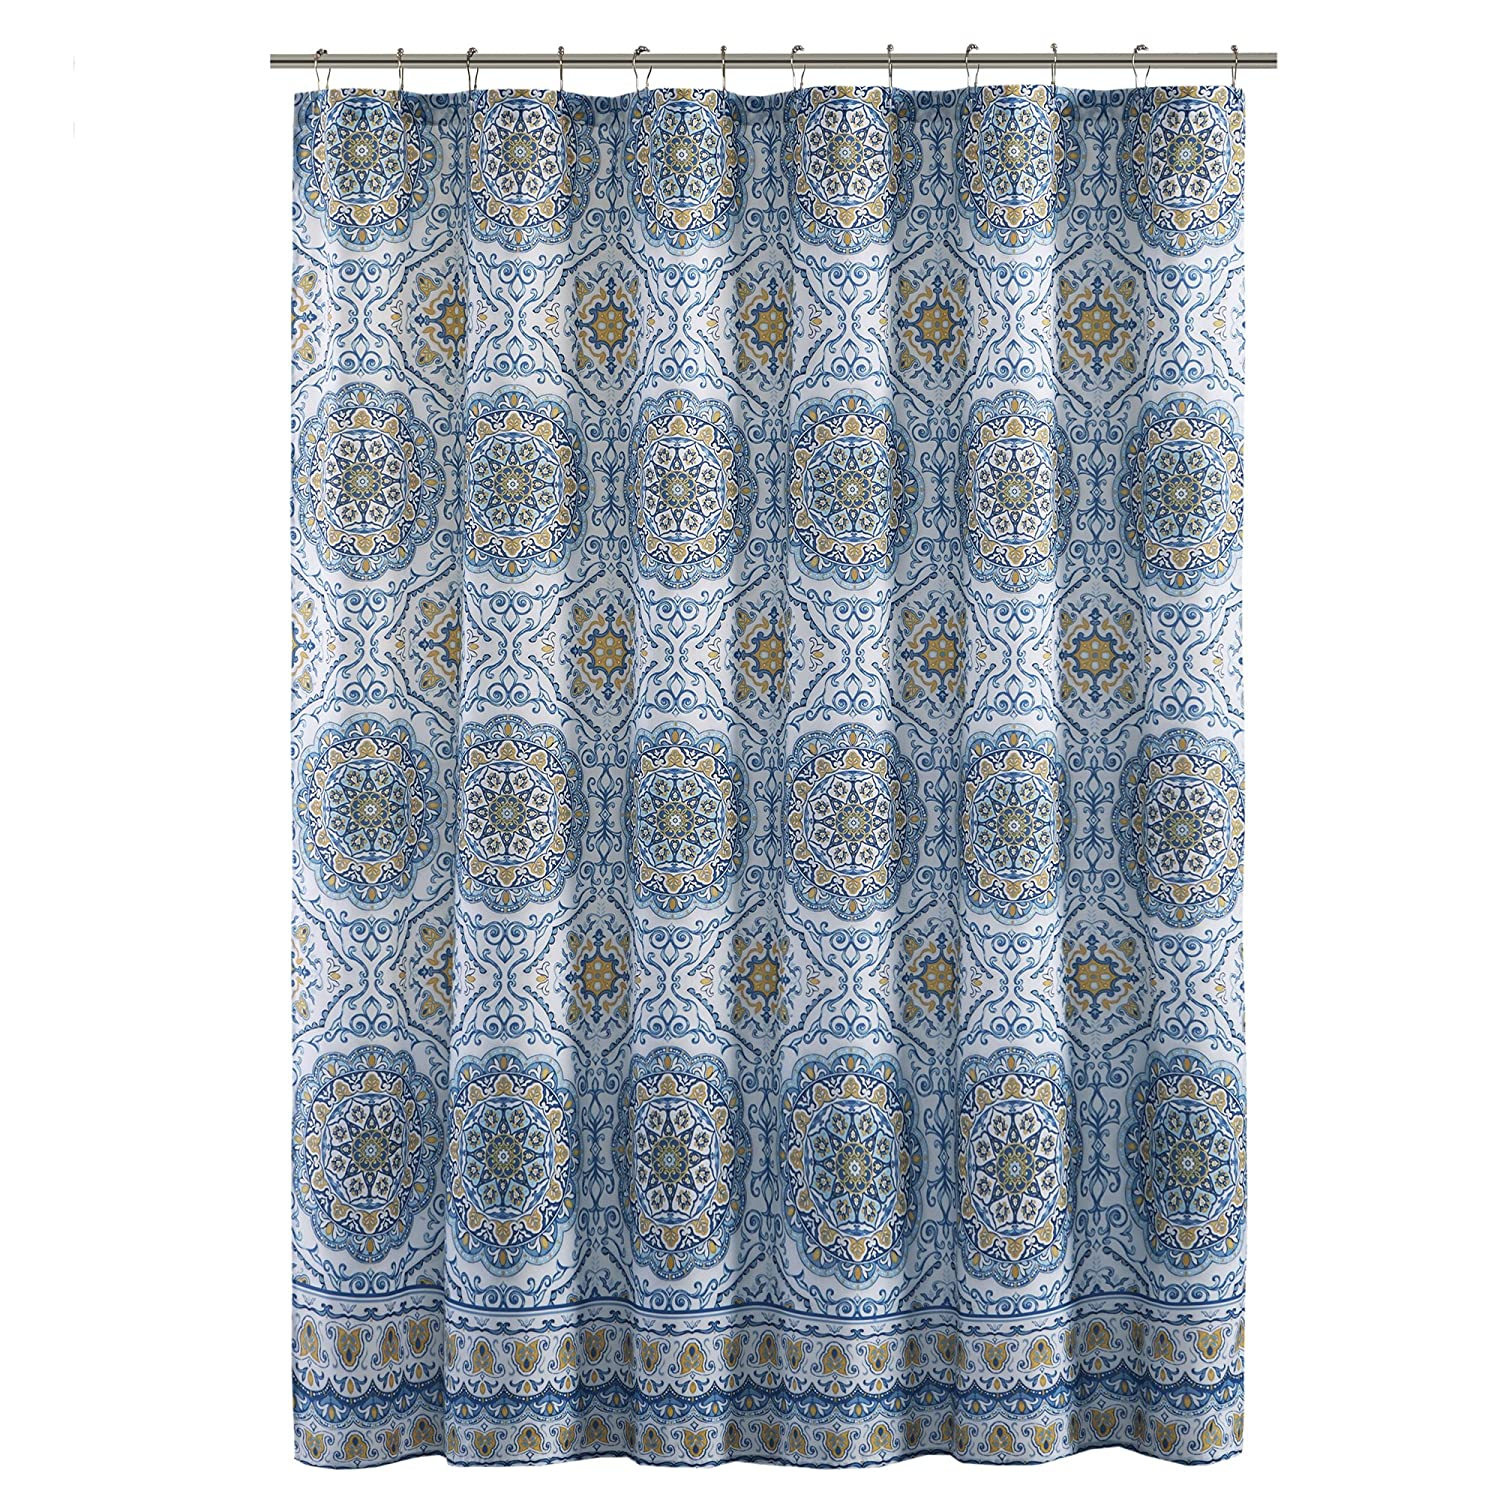 Home Essence Blue/White / Yellow Shower Curtain - Taya Washable Shower Curtains for Bathroom - 72x72 Bath Curtain